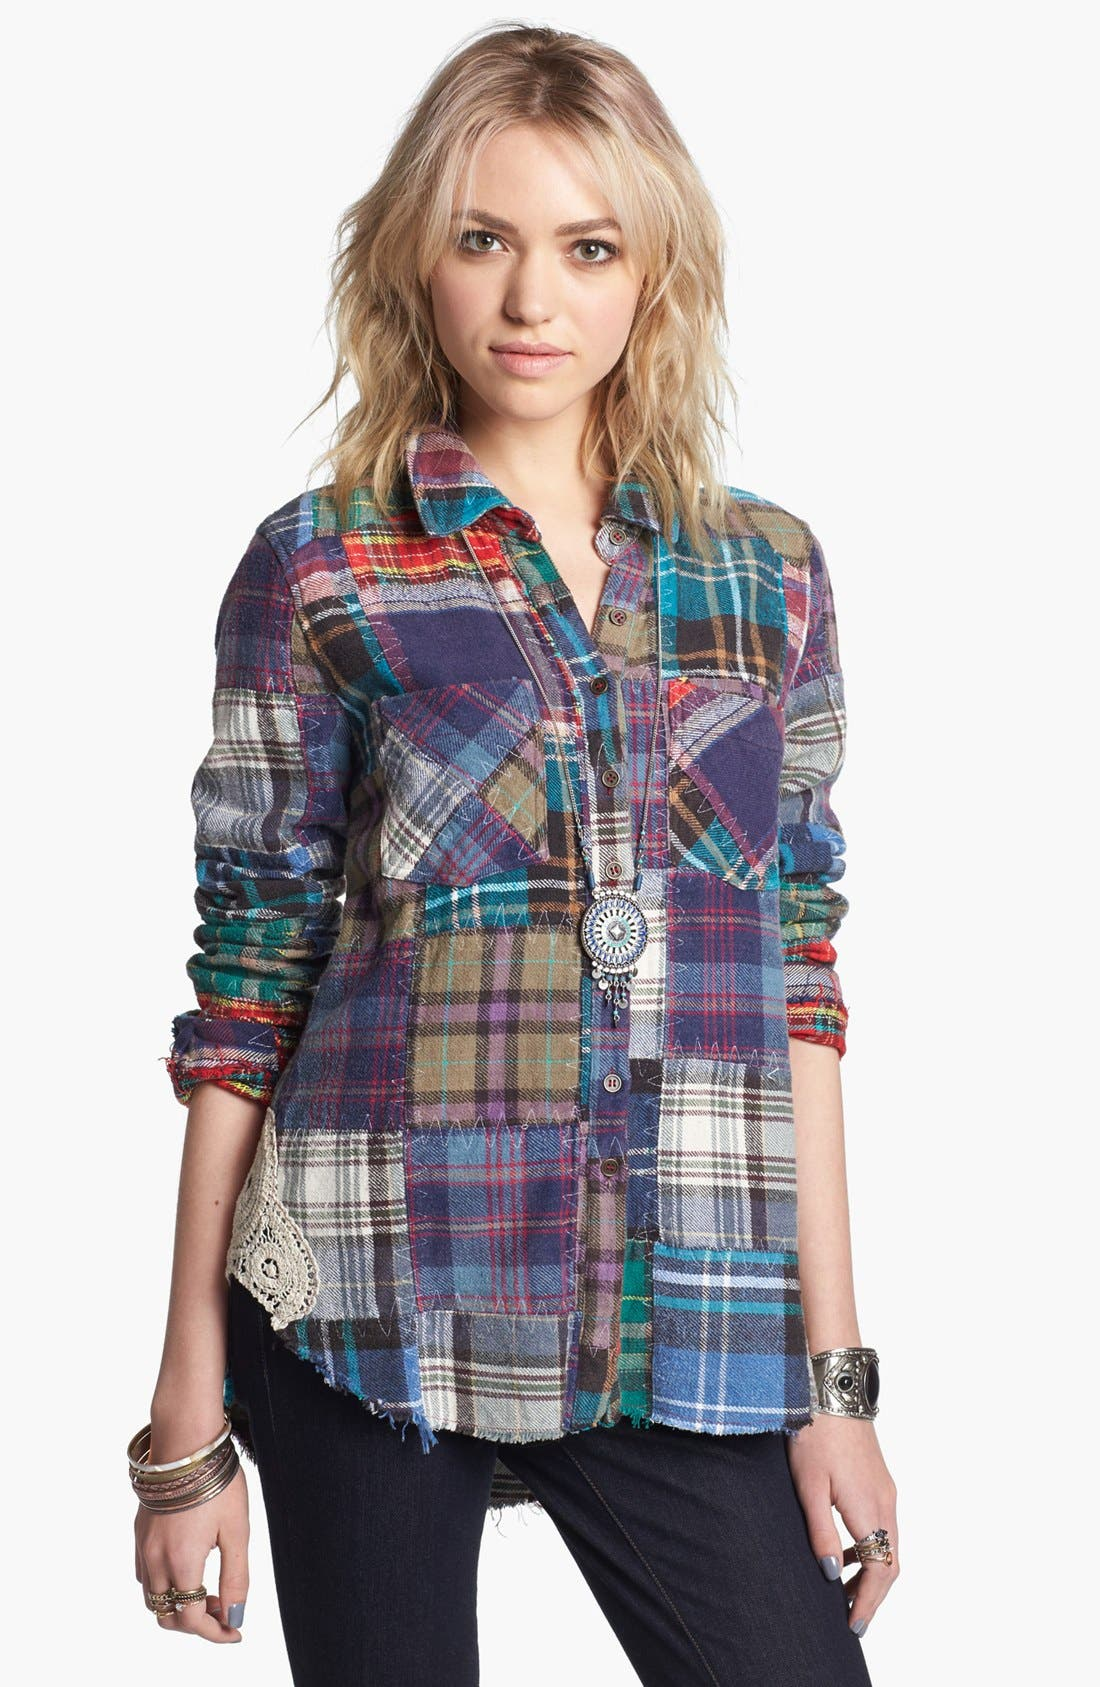 Alternate Image 1 Selected - Free People 'Lost in Plaid' Patchwork Shirt